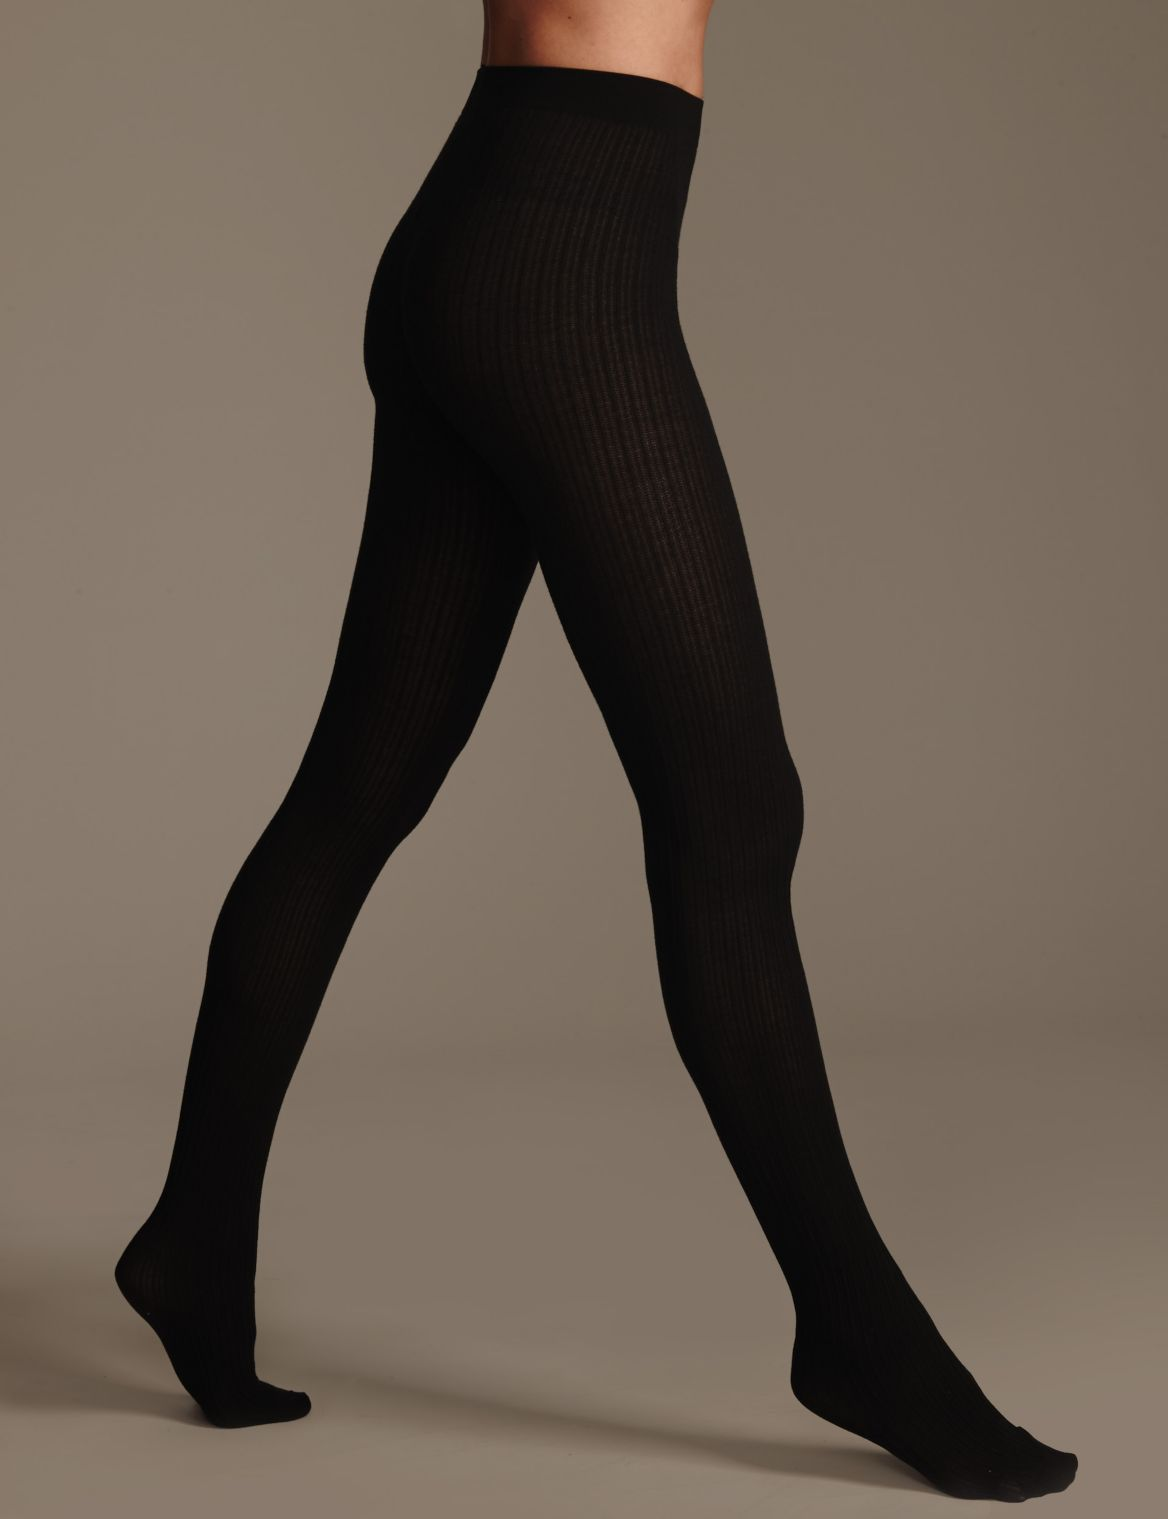 100 Denier Heatgen™ Ribbed Opaque Tights black